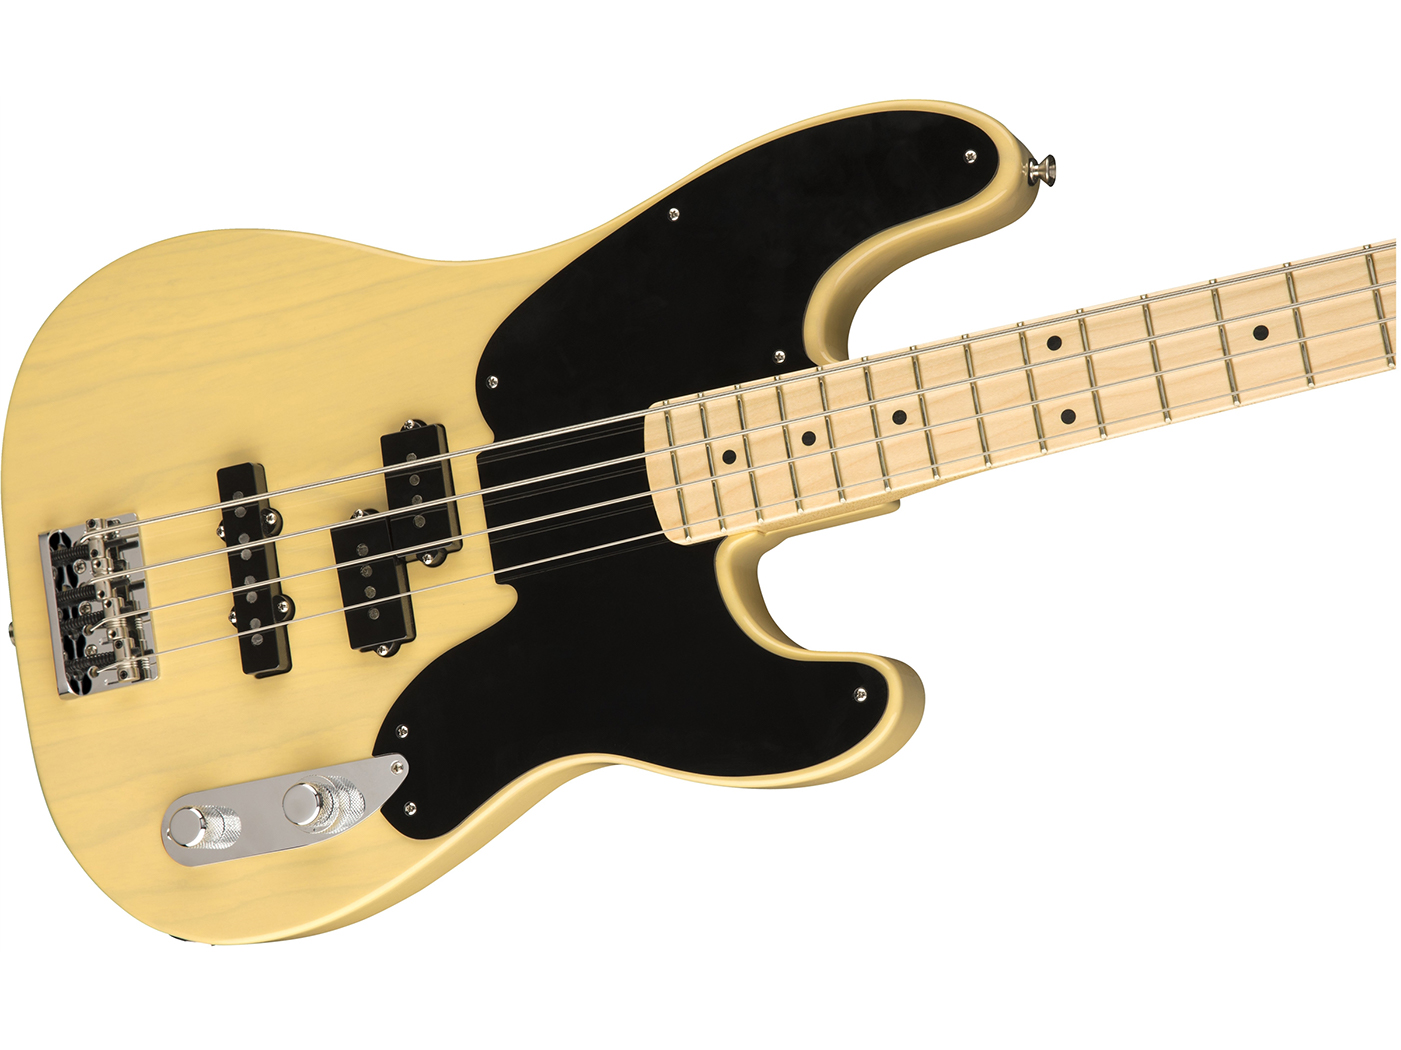 Fender launches the Parallel Universe '51 Telecaster PJ Bass